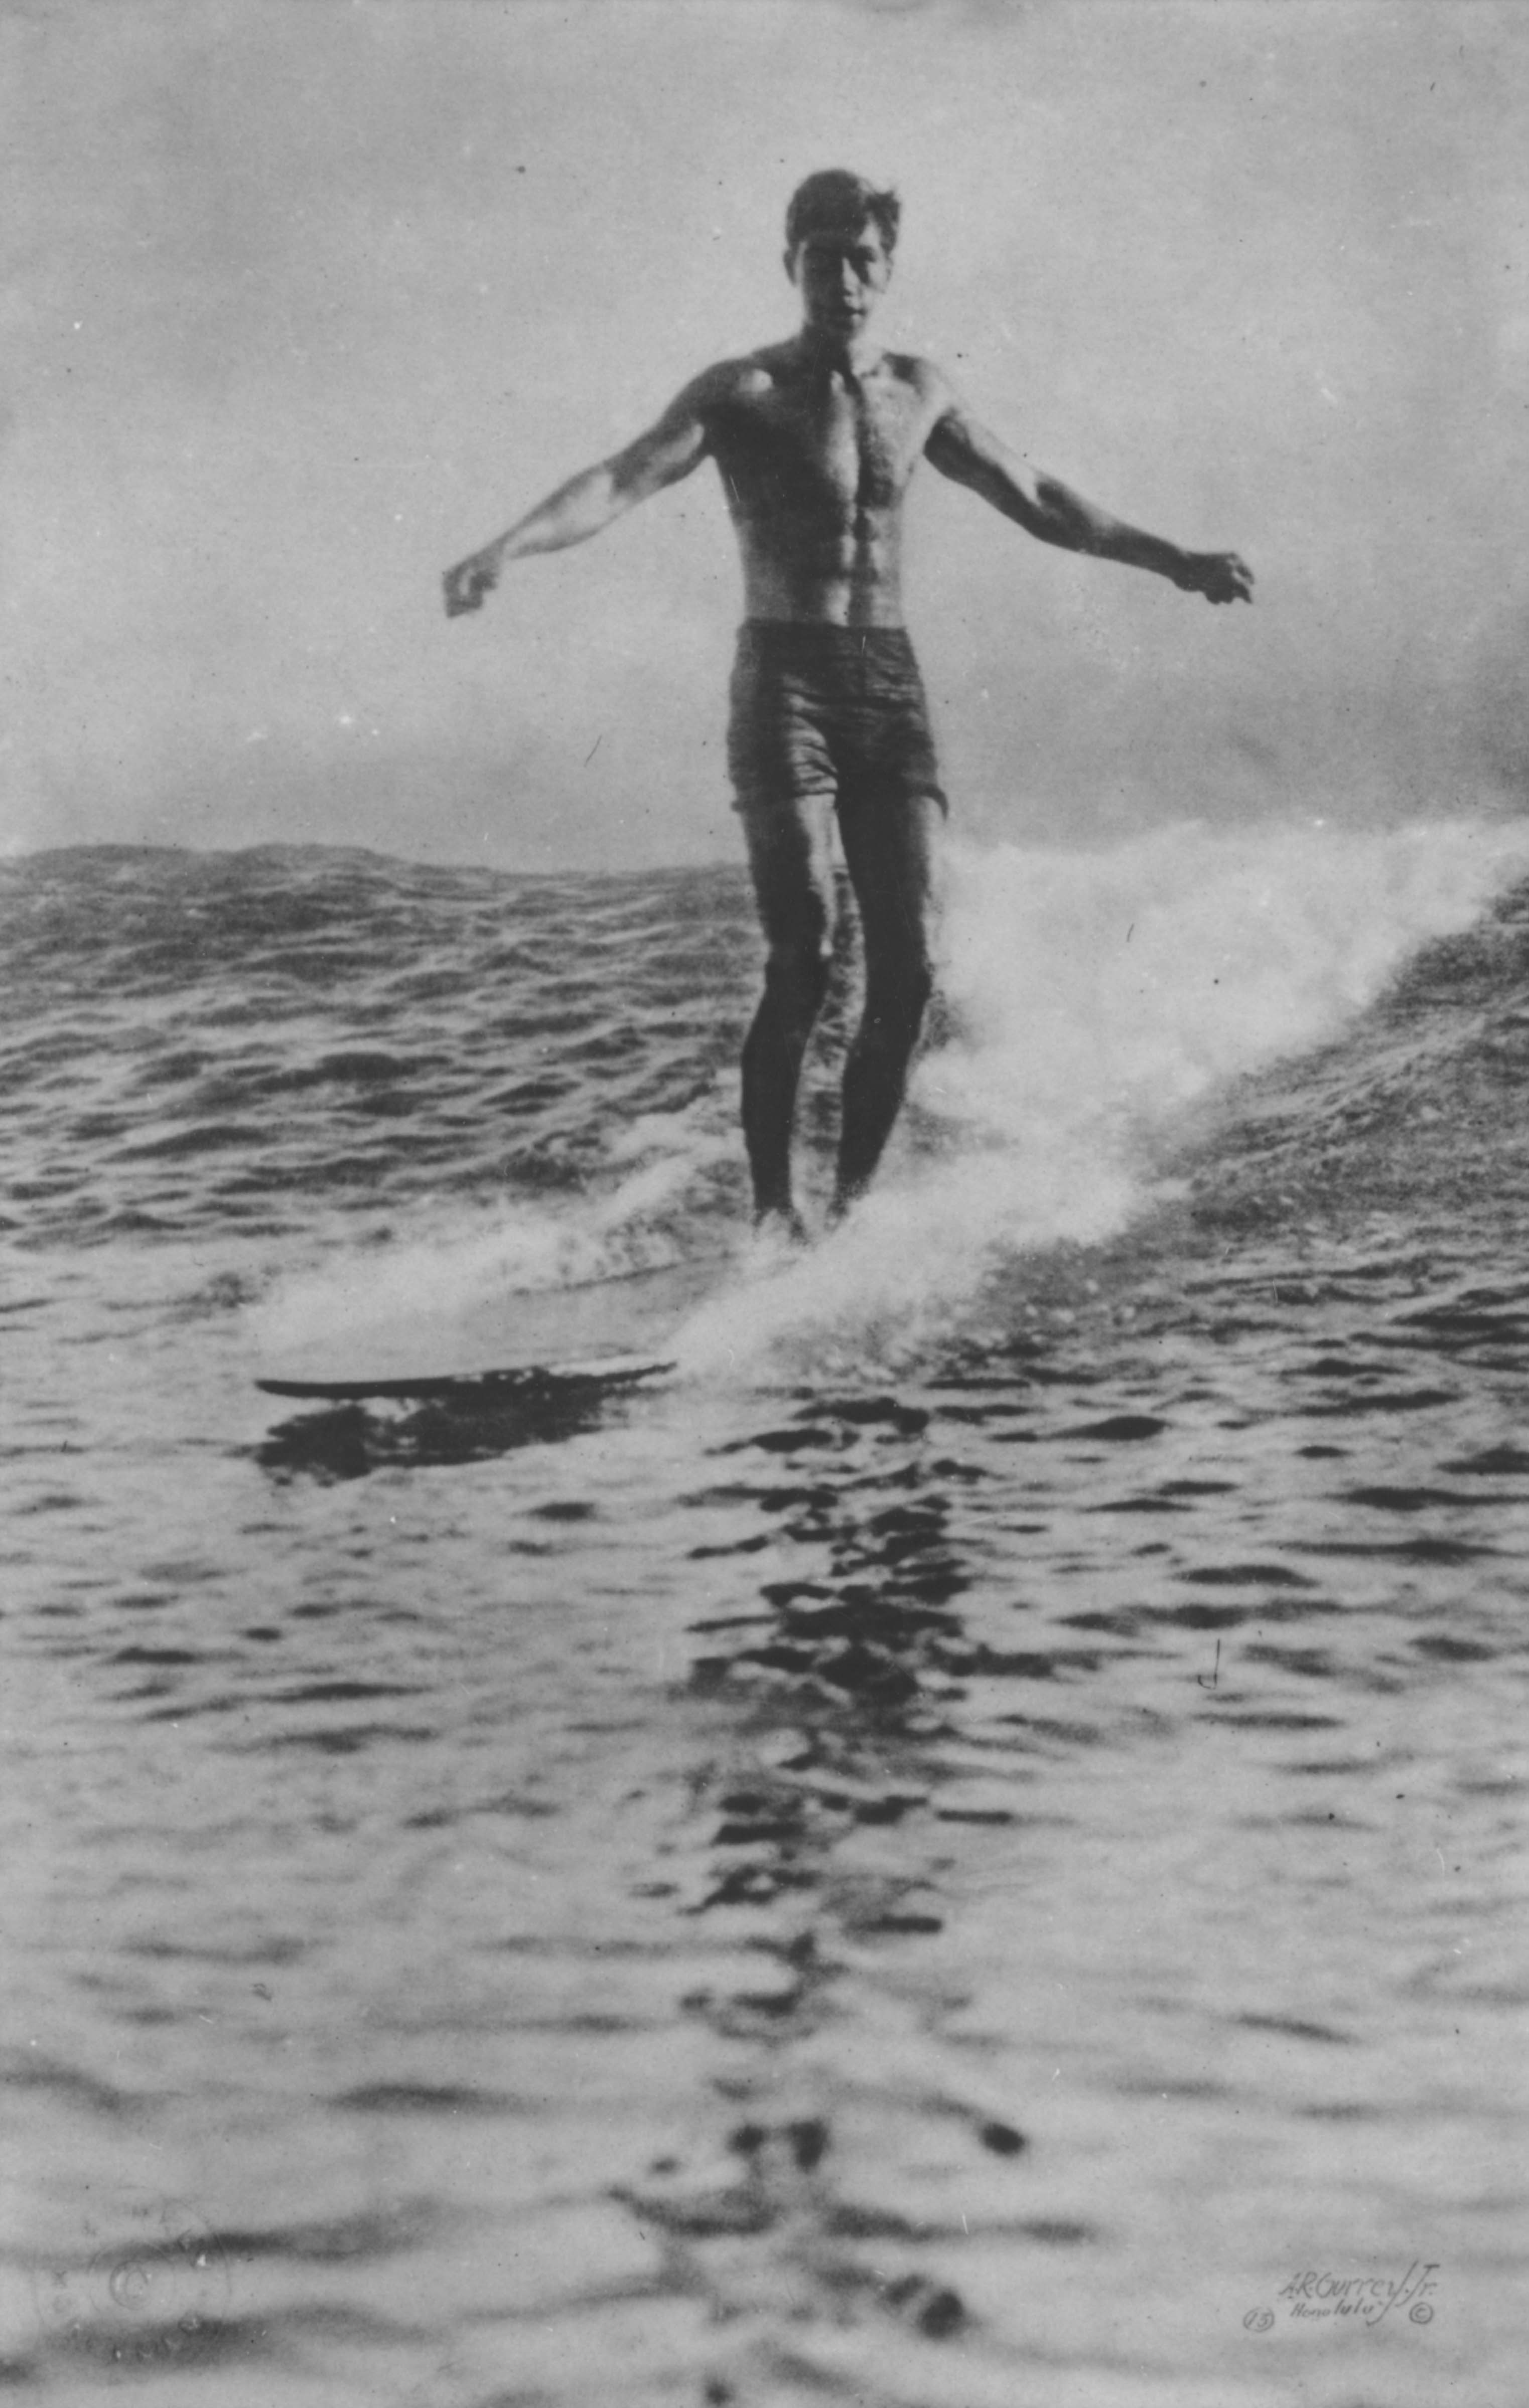 [Duke Kahanamoku surfing] Hawaiʻi, ca. 1910. Photo by Alfred R. Gurrey Jr.